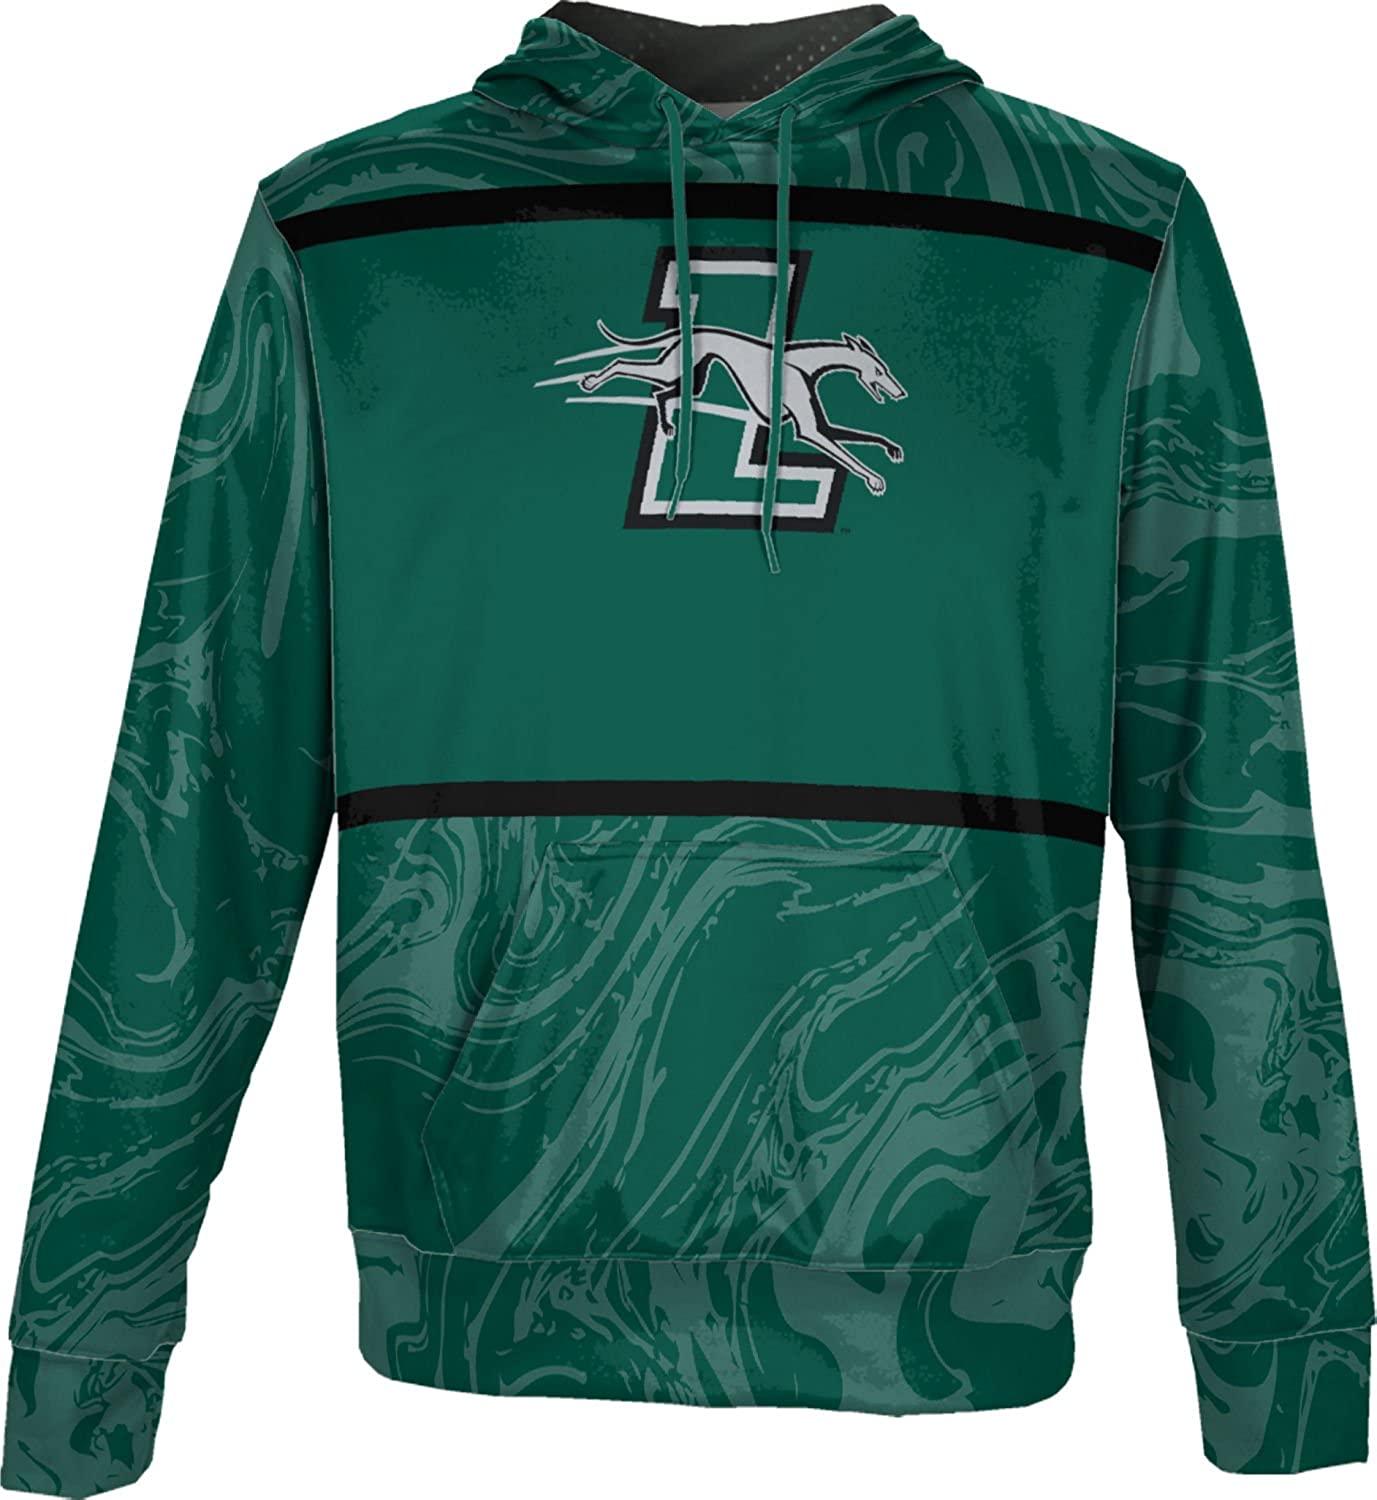 ProSphere Loyola University Maryland Boys Pullover Hoodie Ripple